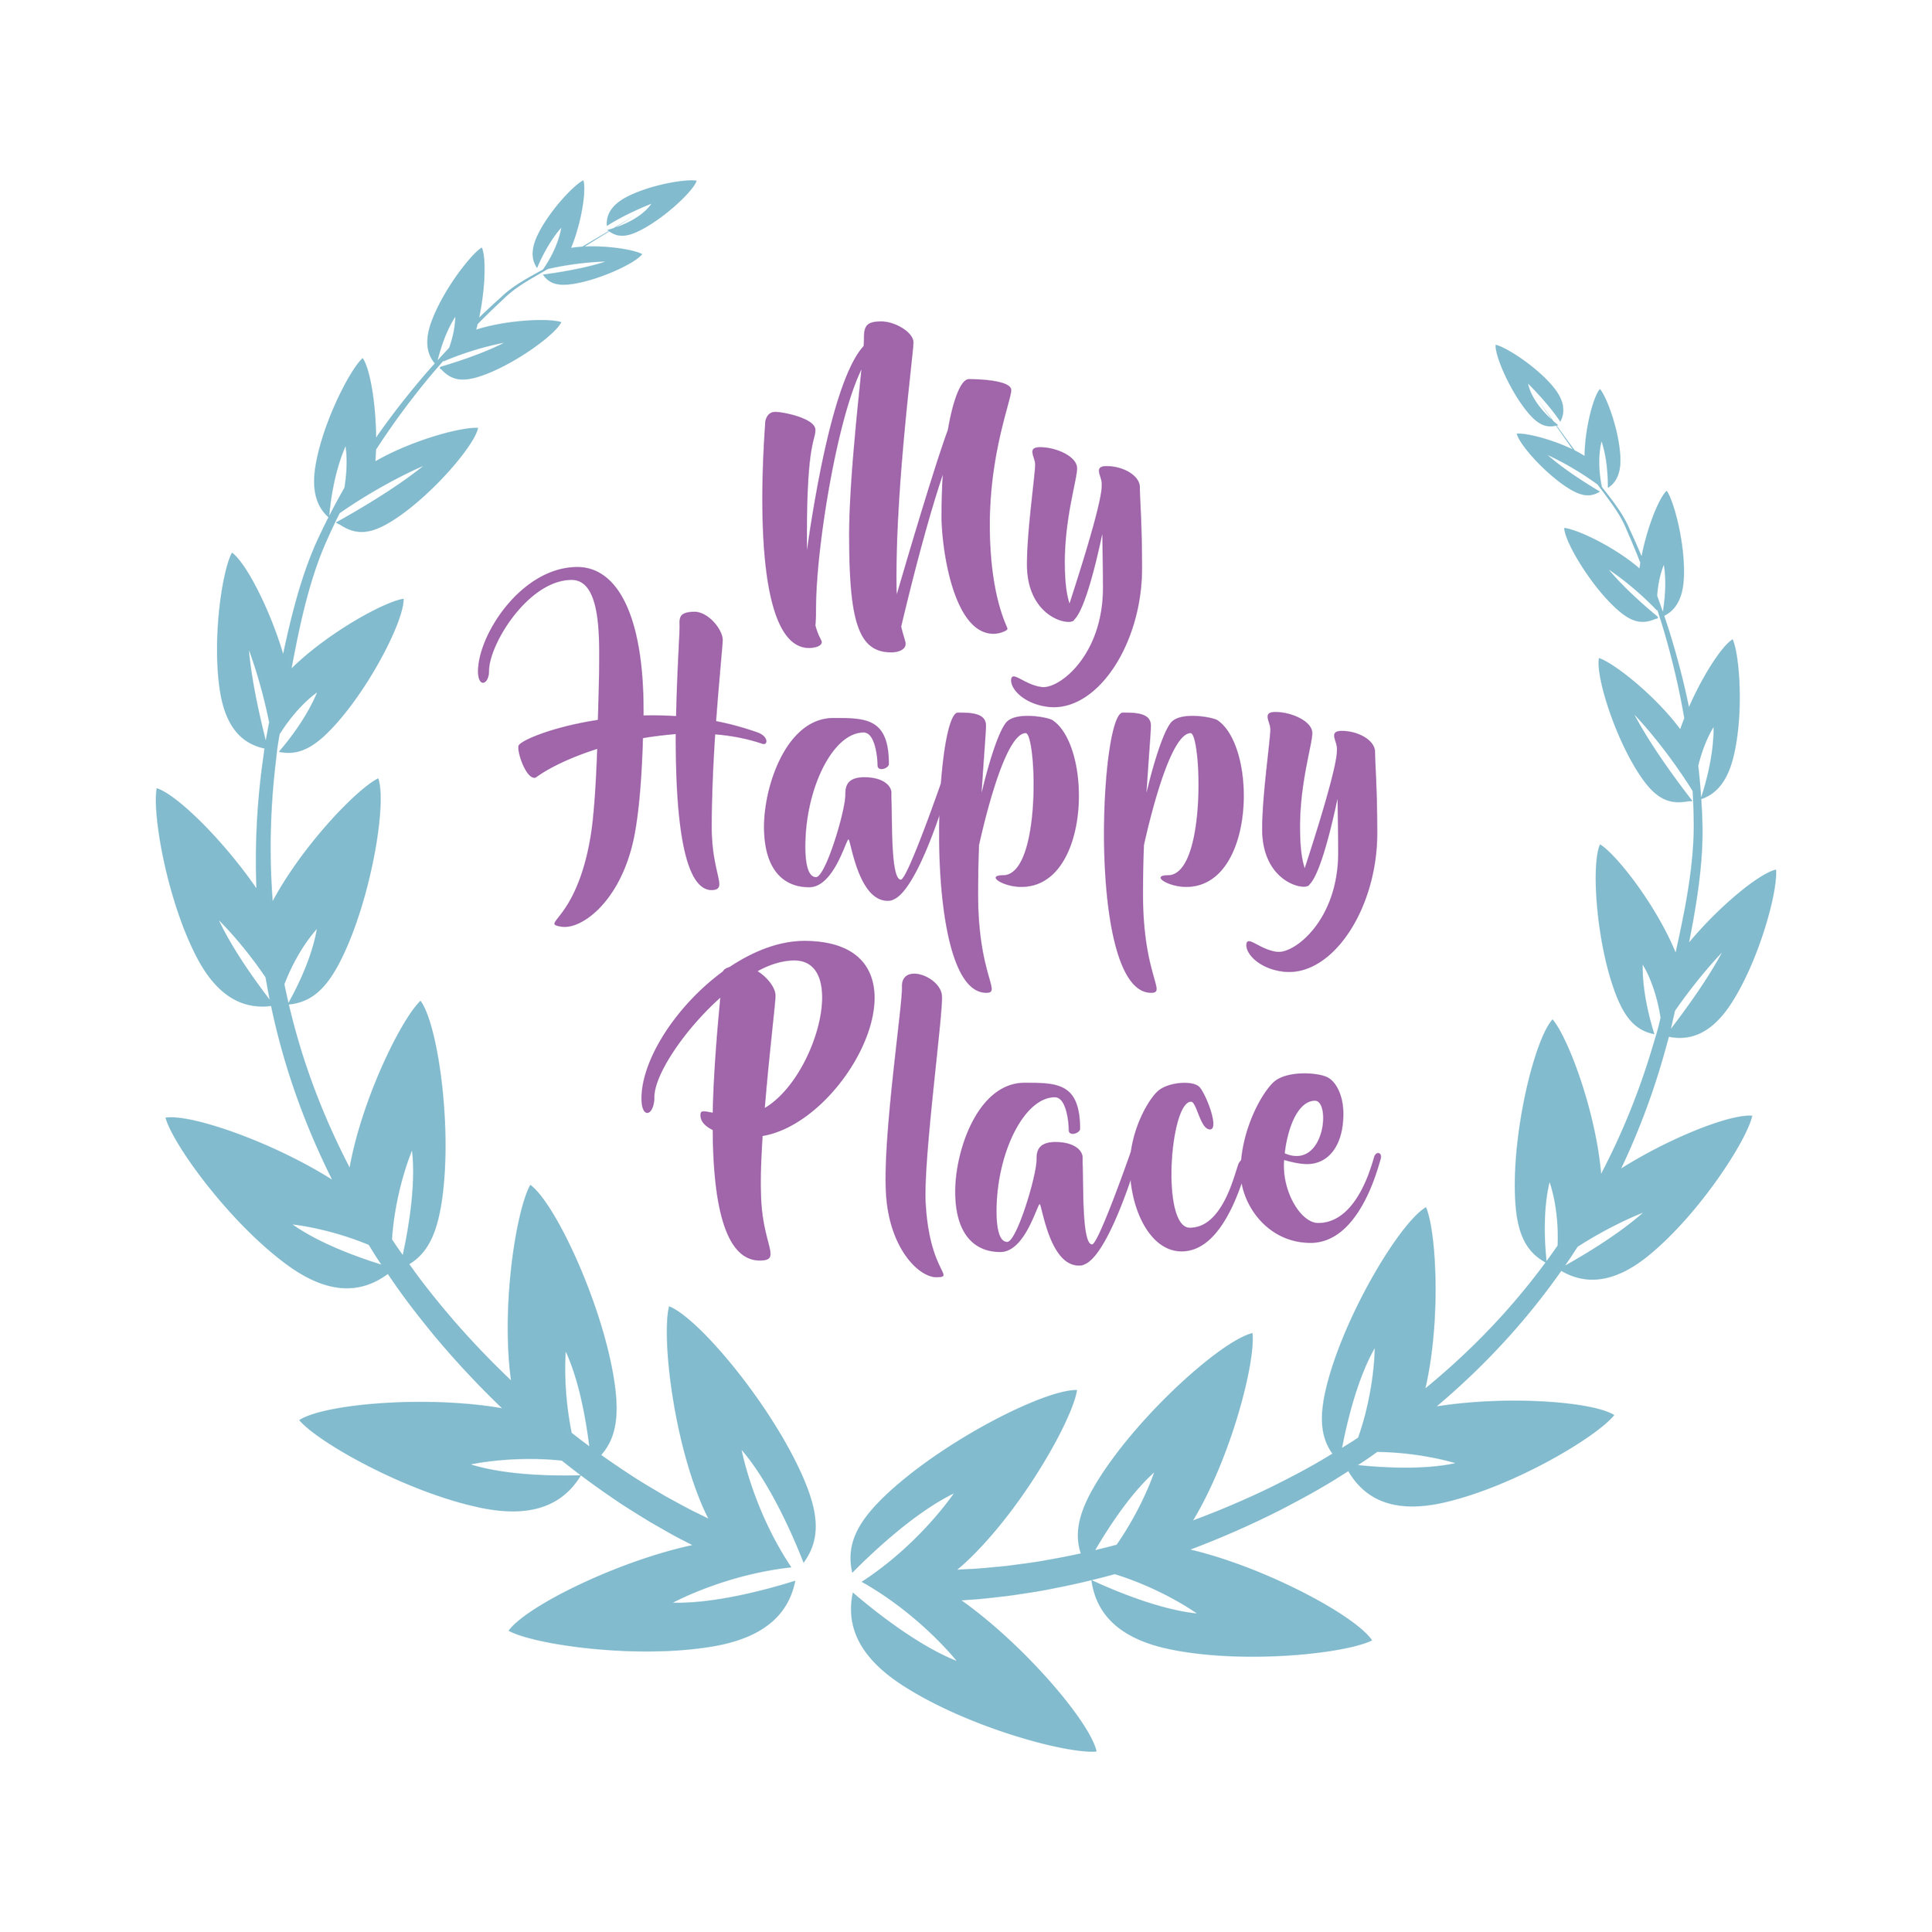 Happy-Place.jpg